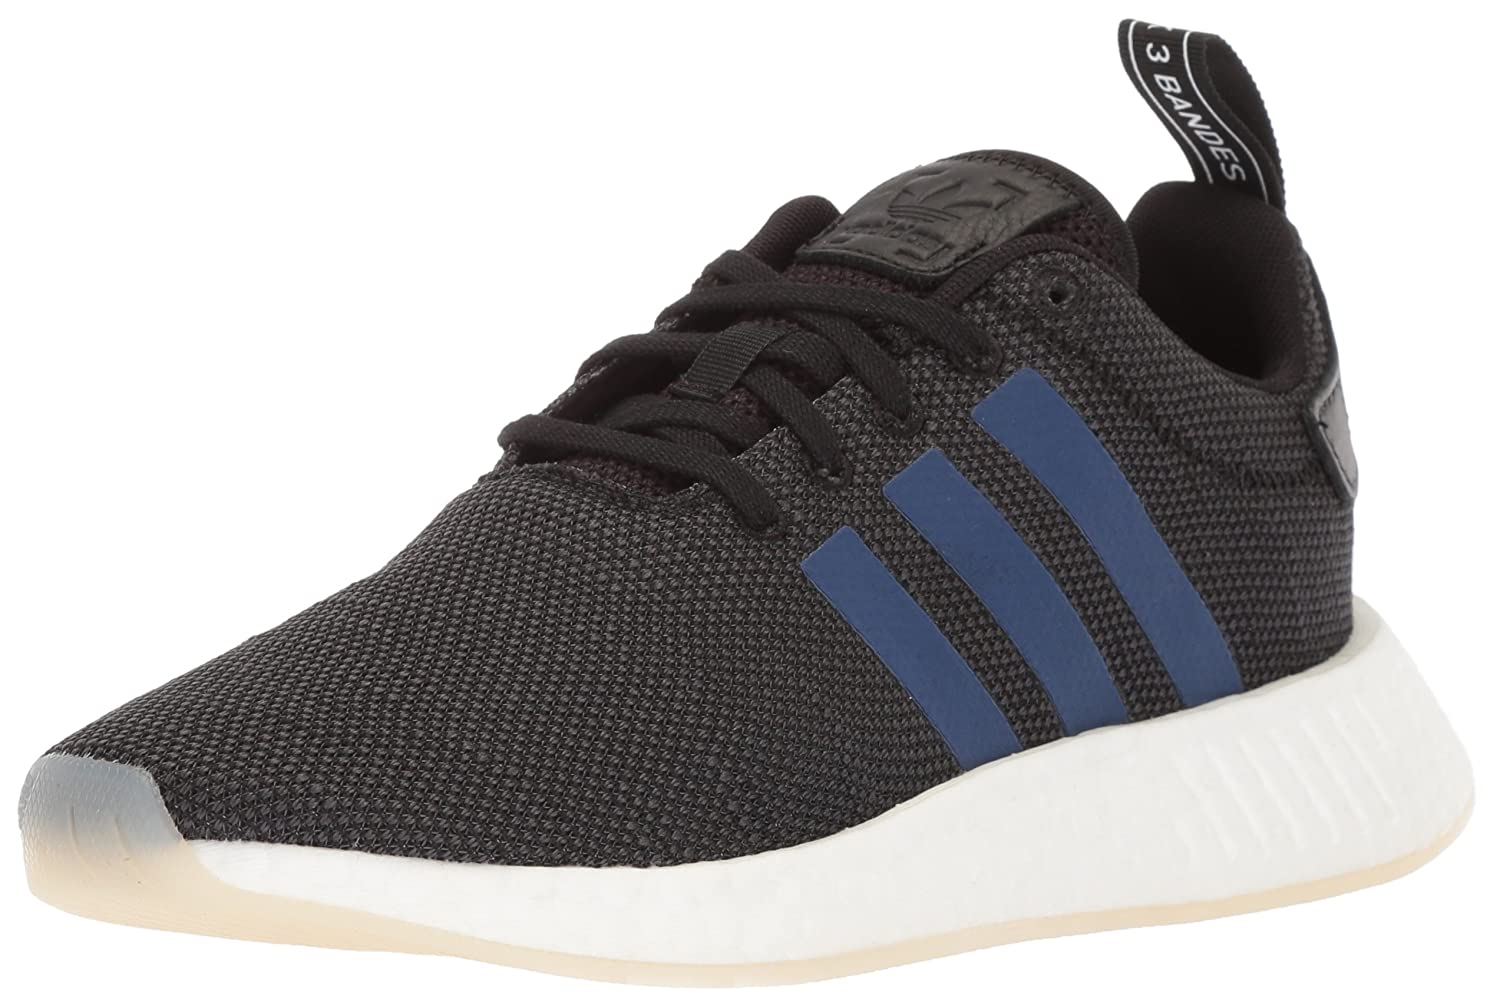 adidas Originals Women's NMD_R2 Running Shoe B078XKK22B 11 B(M) US|Black/Noble Indigo/White